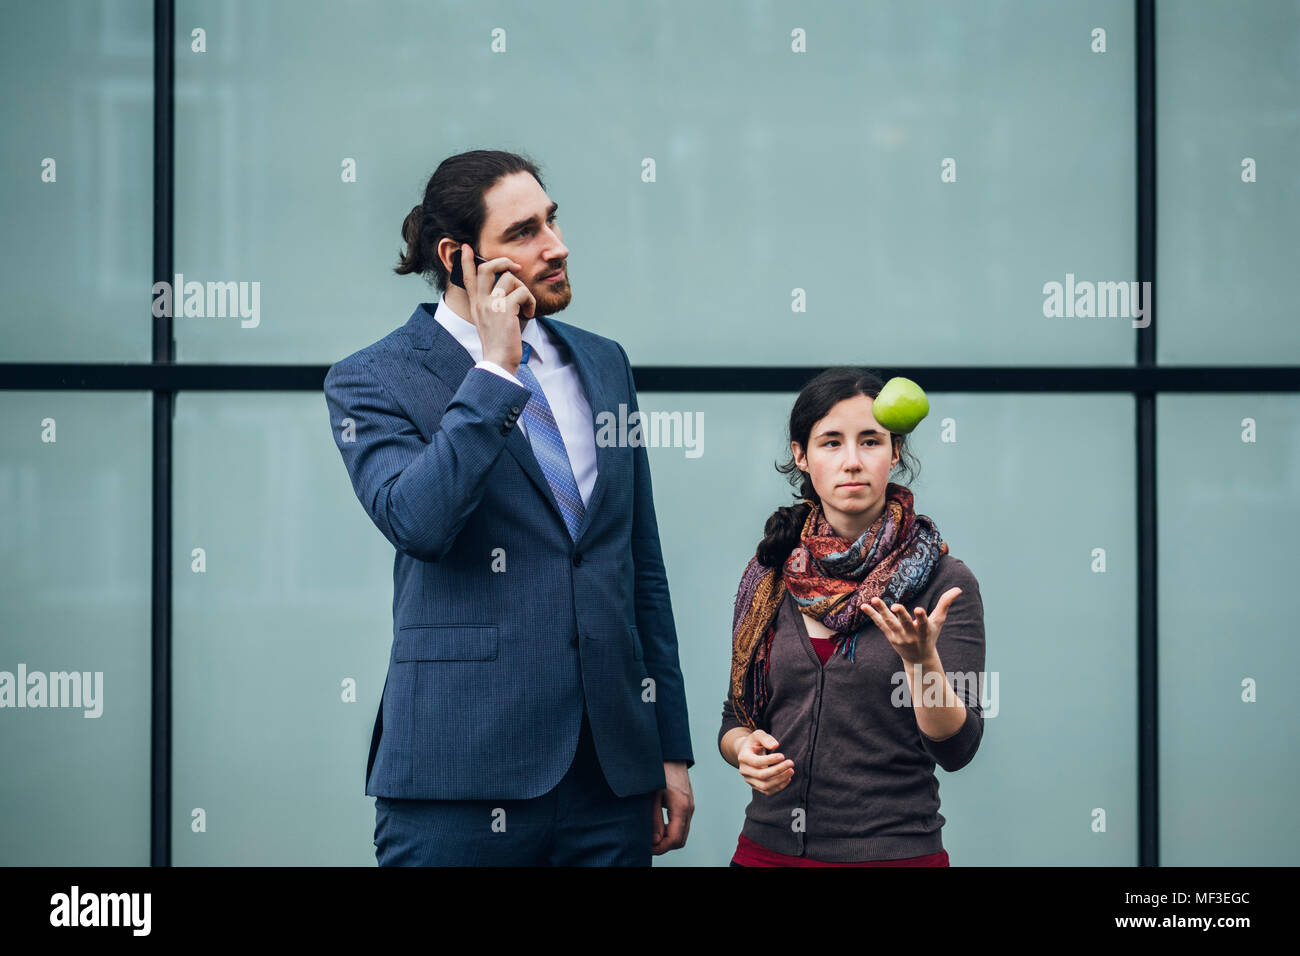 Businessman talking on cell phone and woman throwing an apple - Stock Image